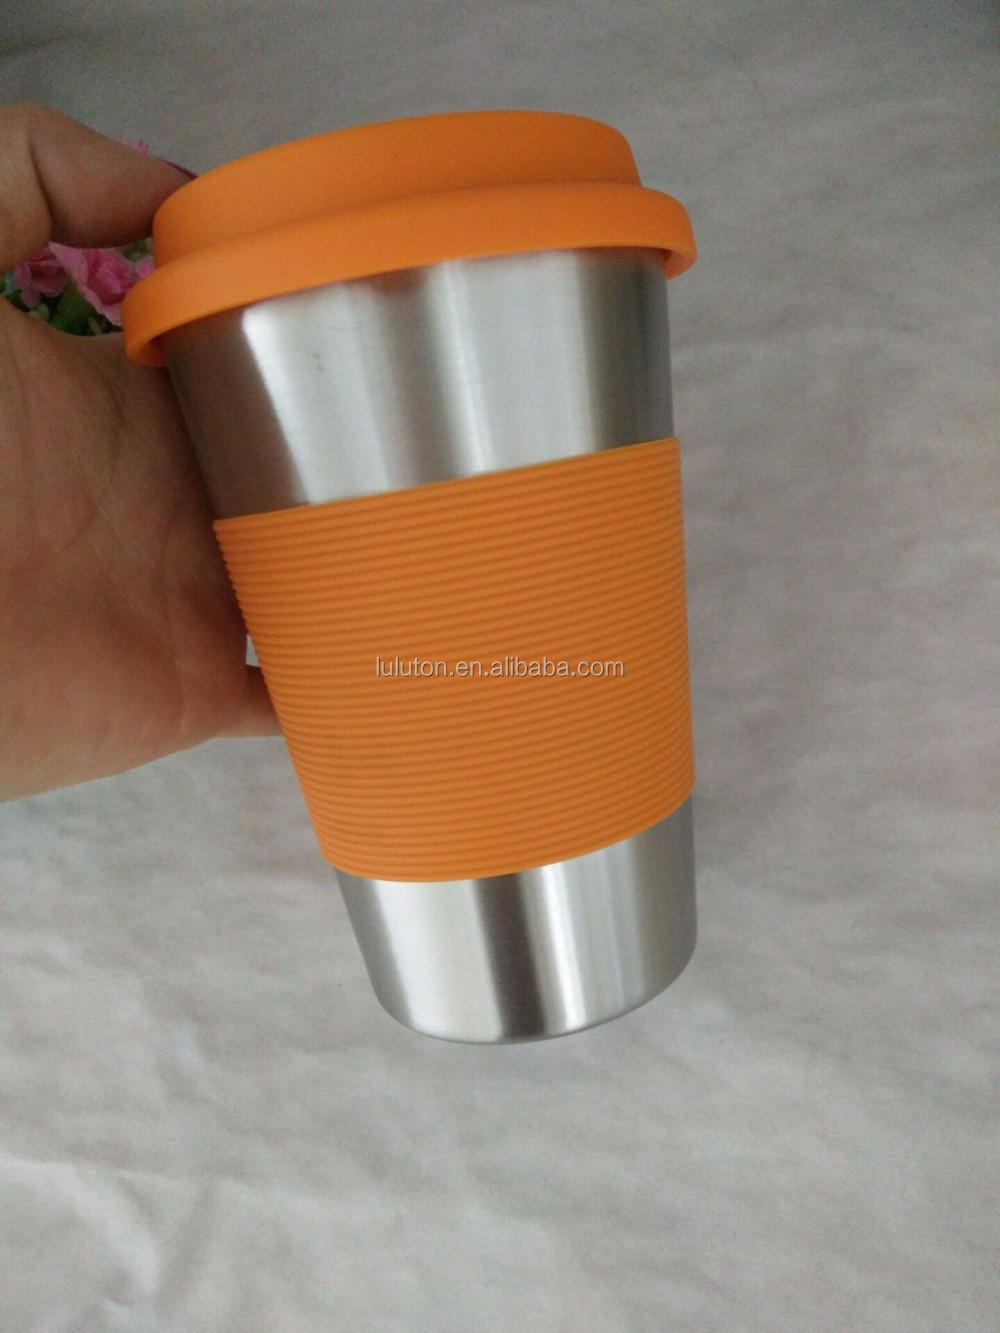 450ml Stainless Steel Metal Type and Silicone Sleeve Feature Coffee Cups